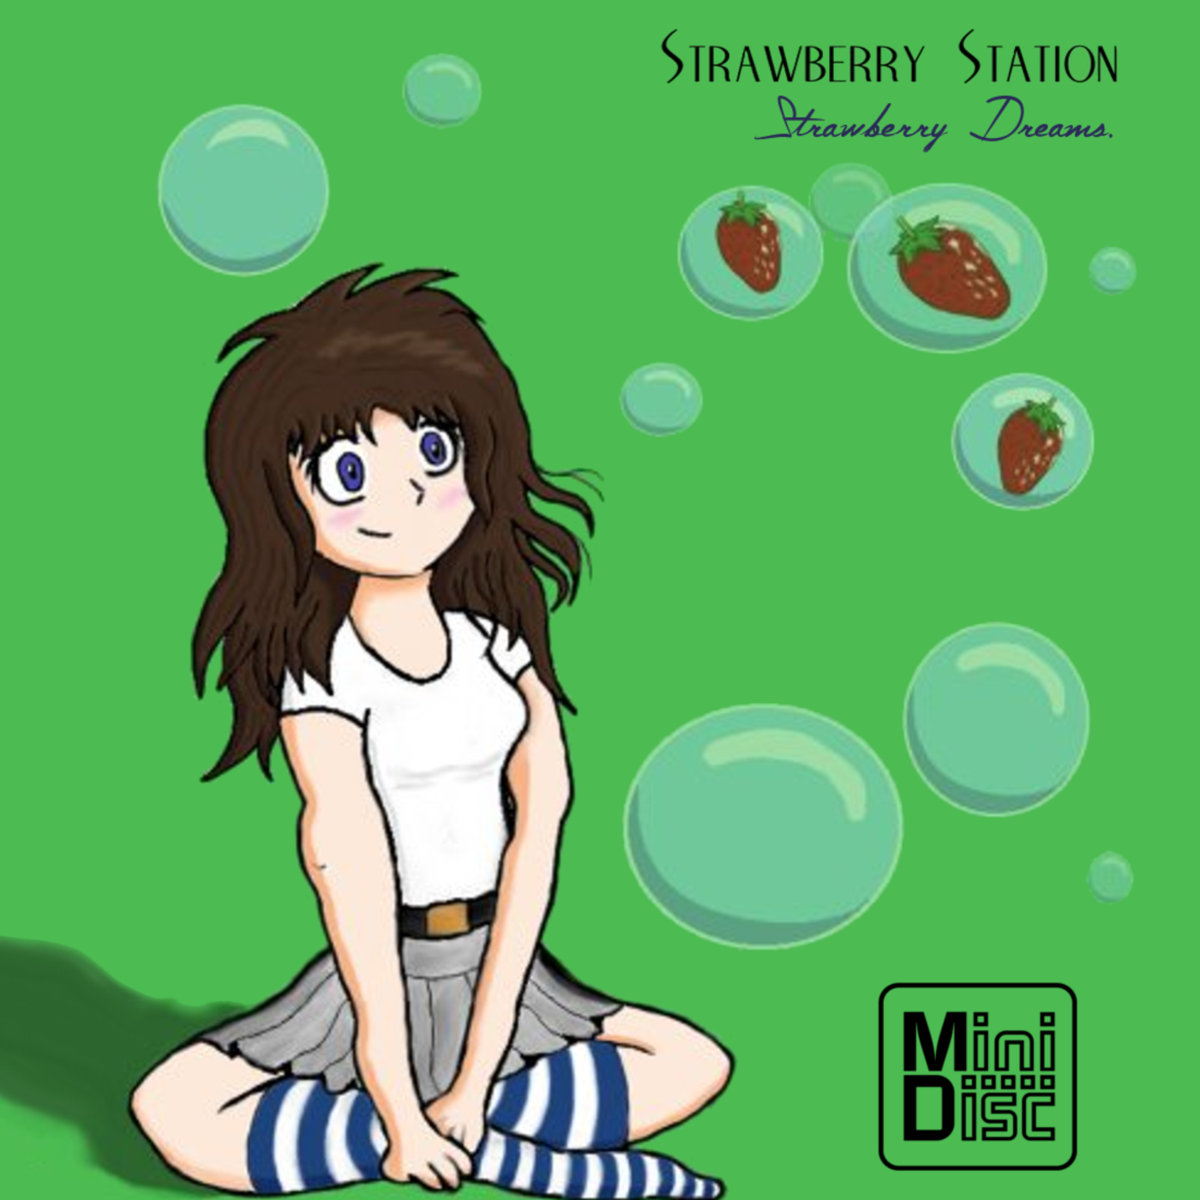 Strawberry Dreams by Strawberry Station